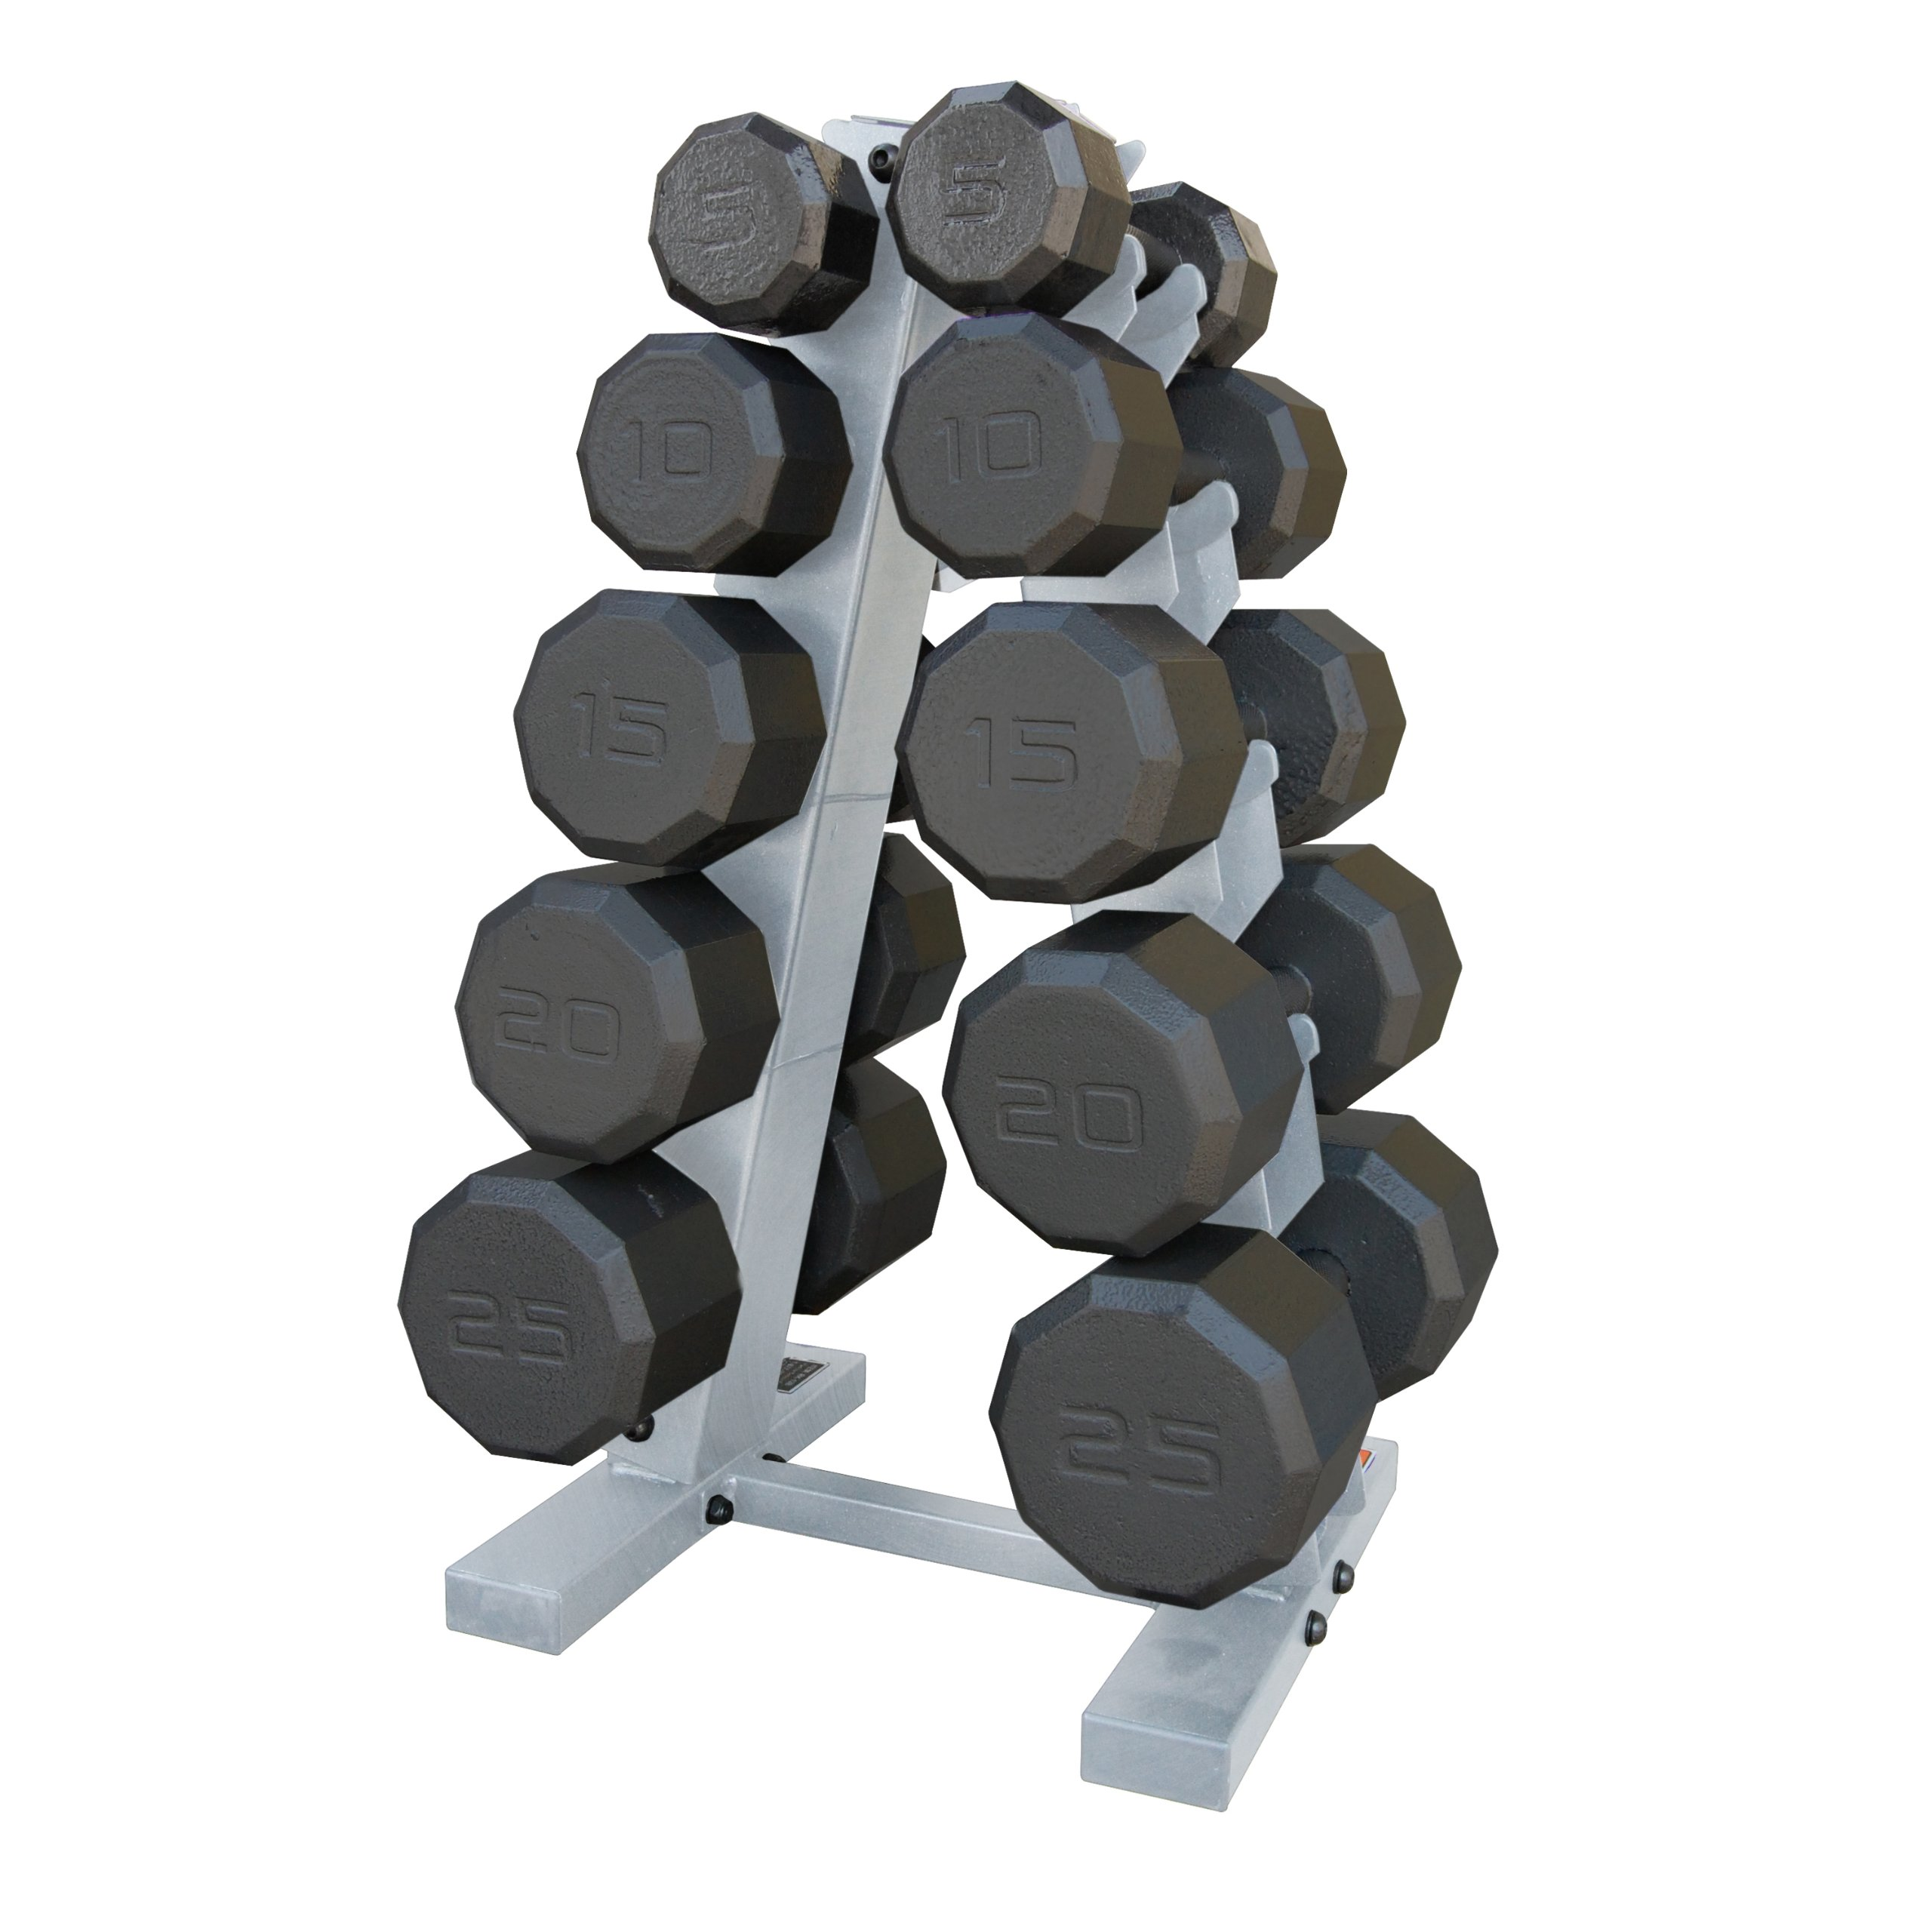 CAP Barbell Dumbbell Set by CAP Barbell (Image #1)